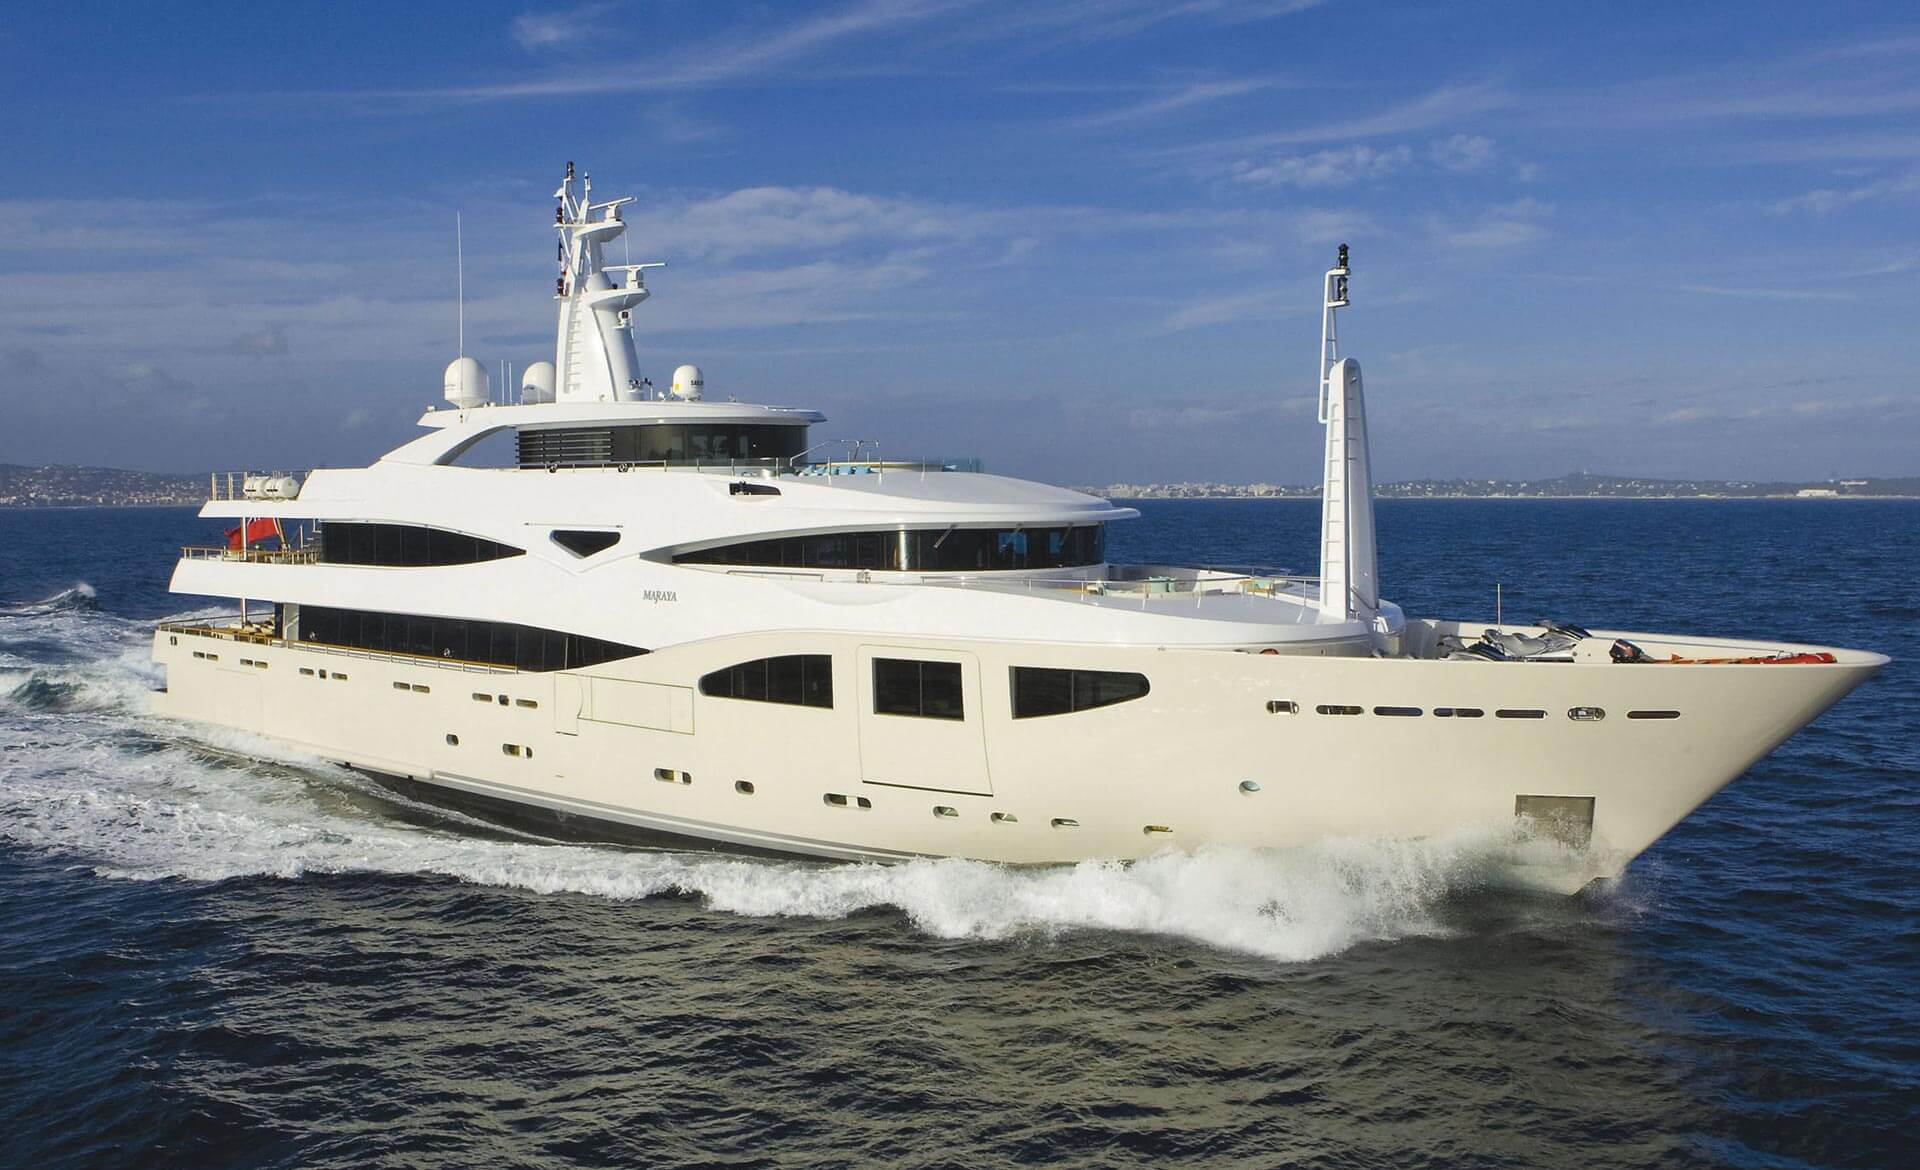 10 Nicest Celebrity Yachts And The Owners